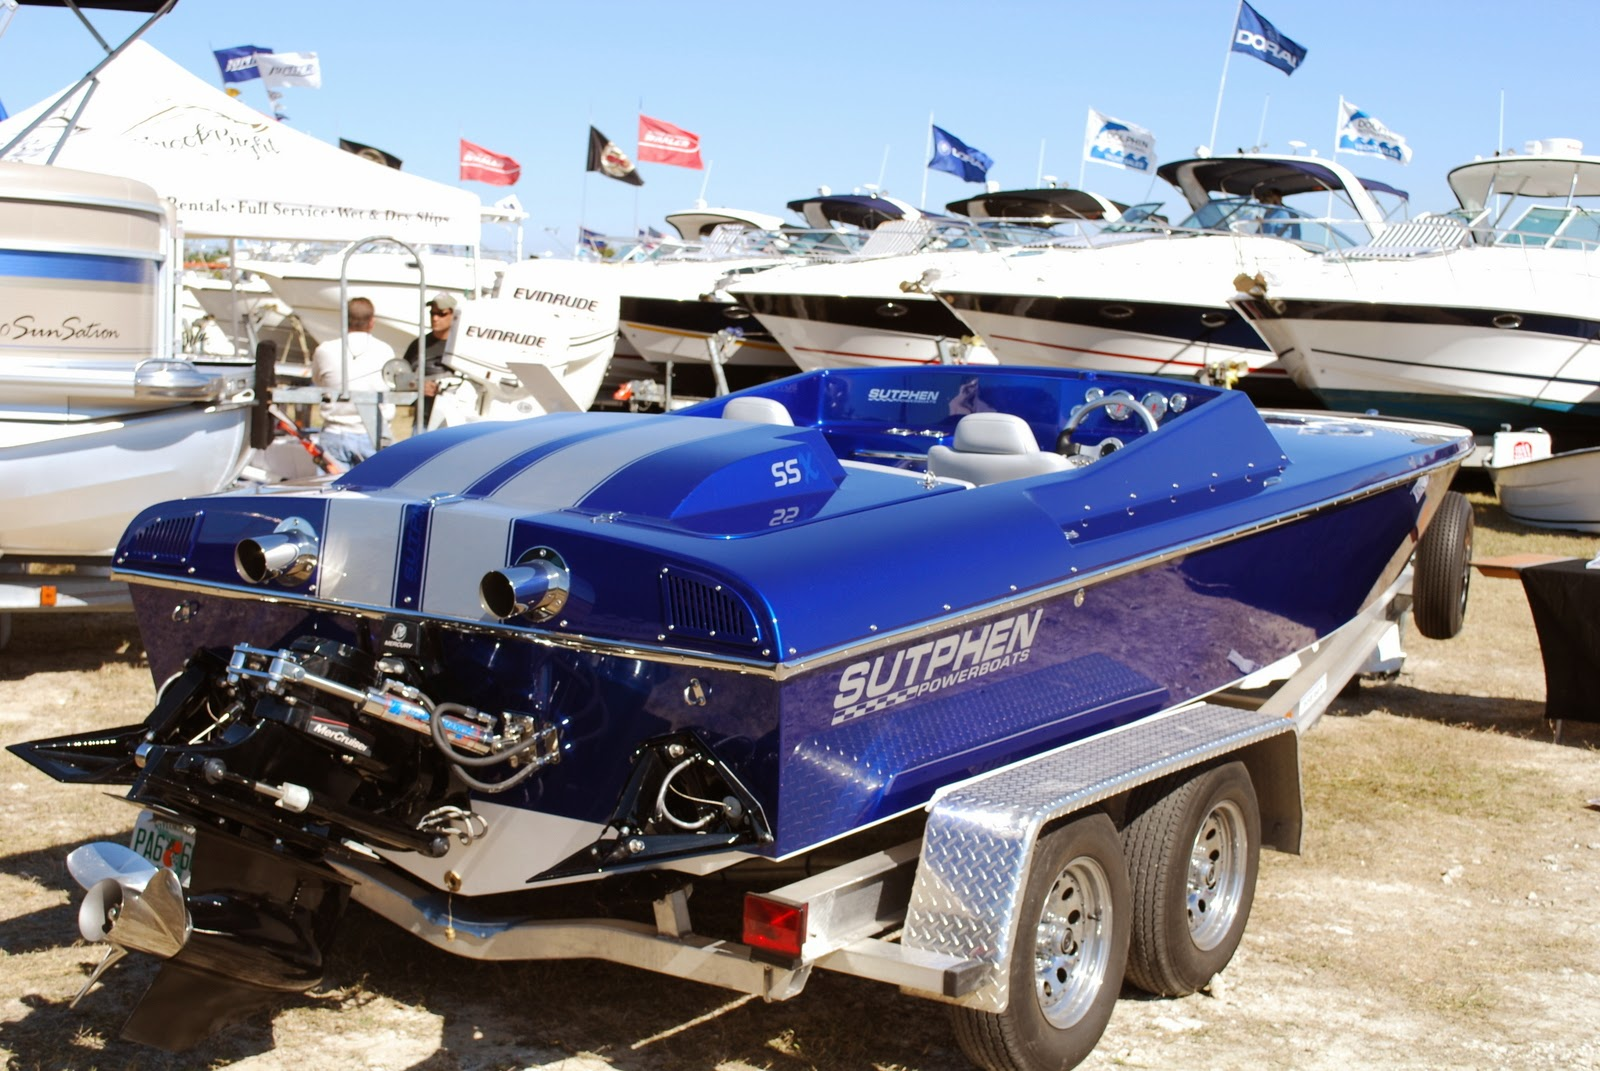 Sutphen - The 21 Sutphen is a close competitor to the 22 Classic. It has a narrow pad and a 20 degree deadrise hull.